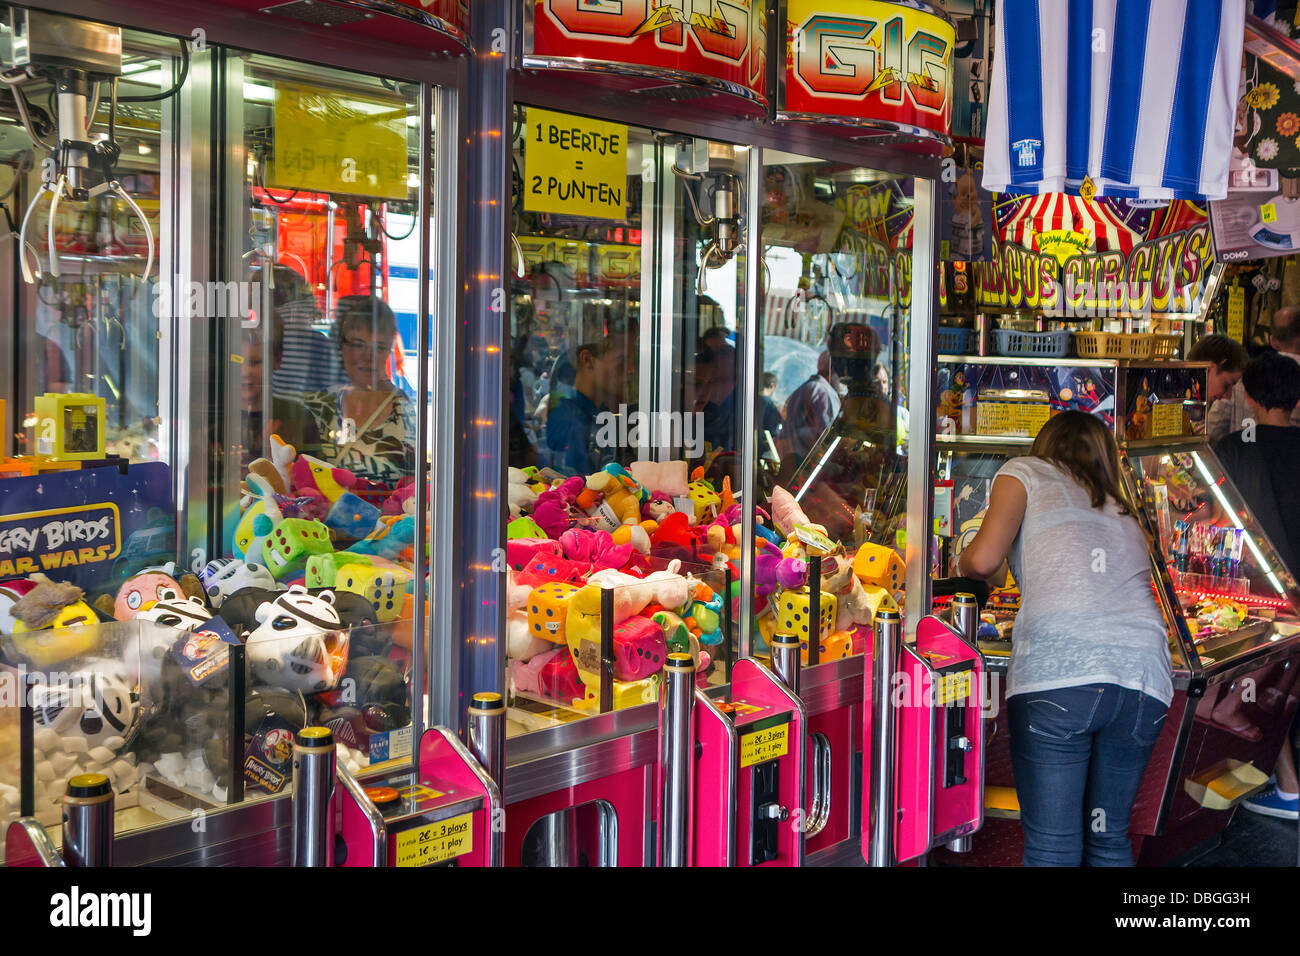 Arcade with claw crane game machines filled with toys and coin pusher / push medal games at travelling fun fair - Stock Image